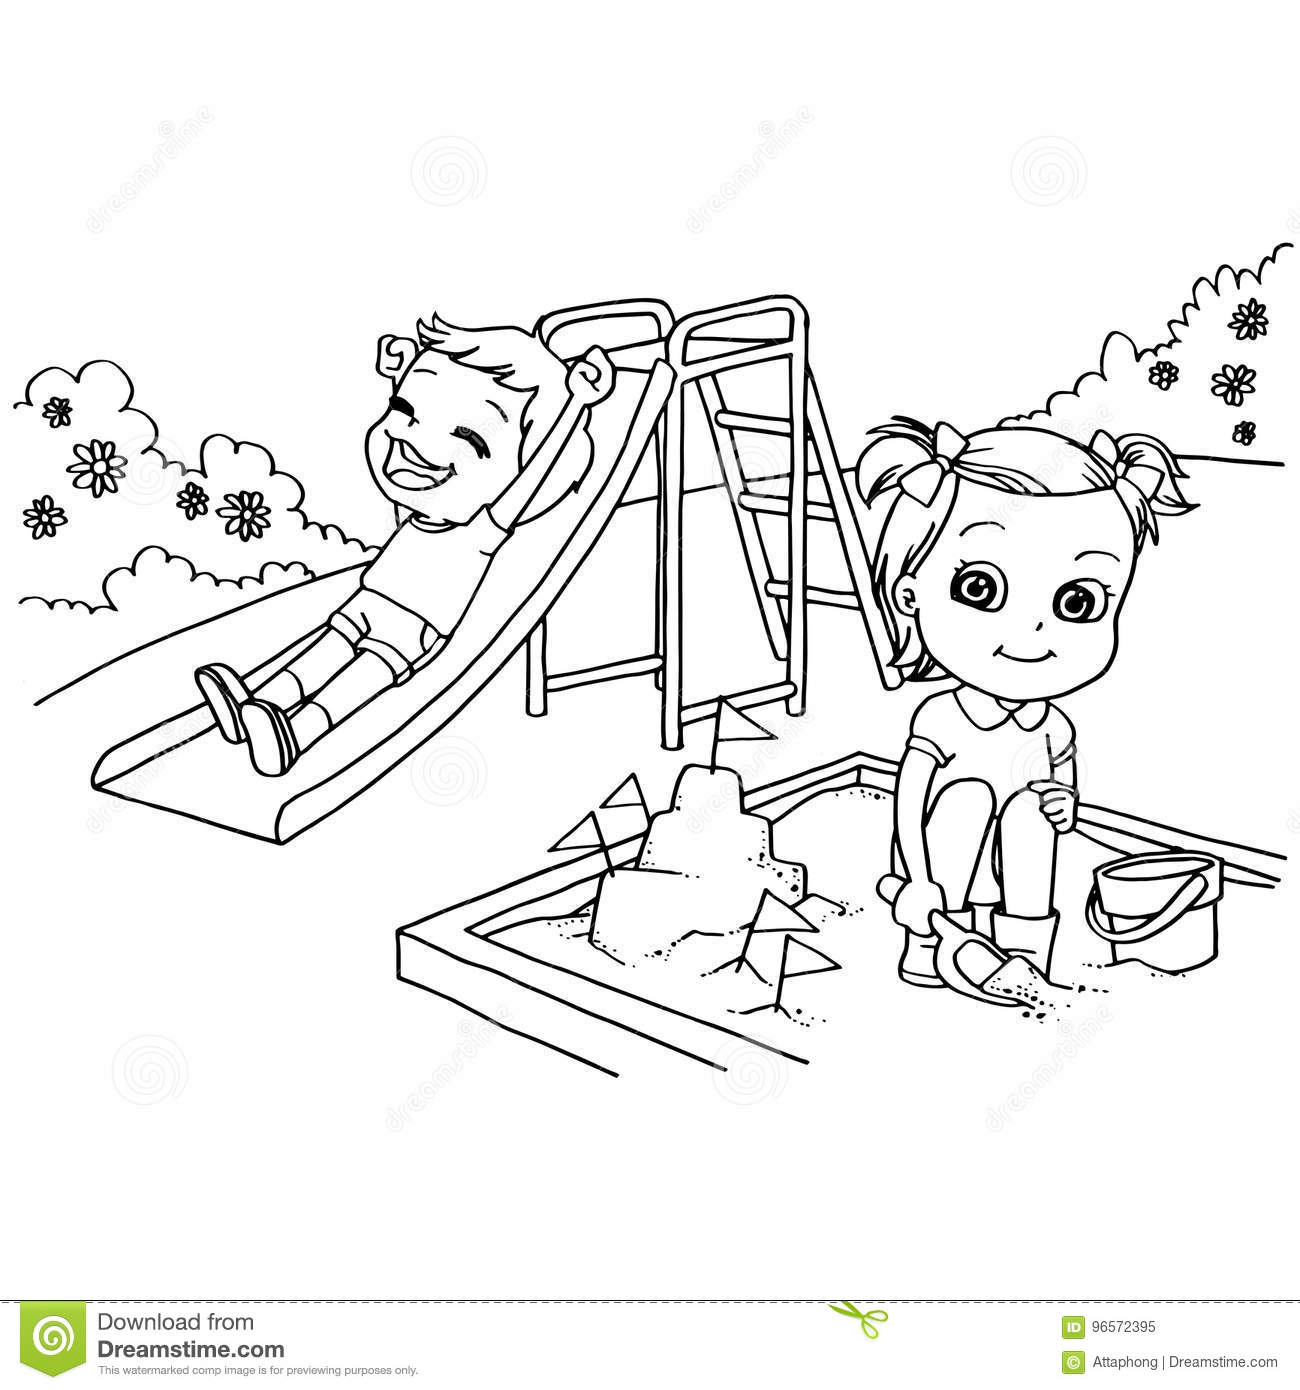 playground coloring pages school yard playground free coloring pages for kids playground coloring pages